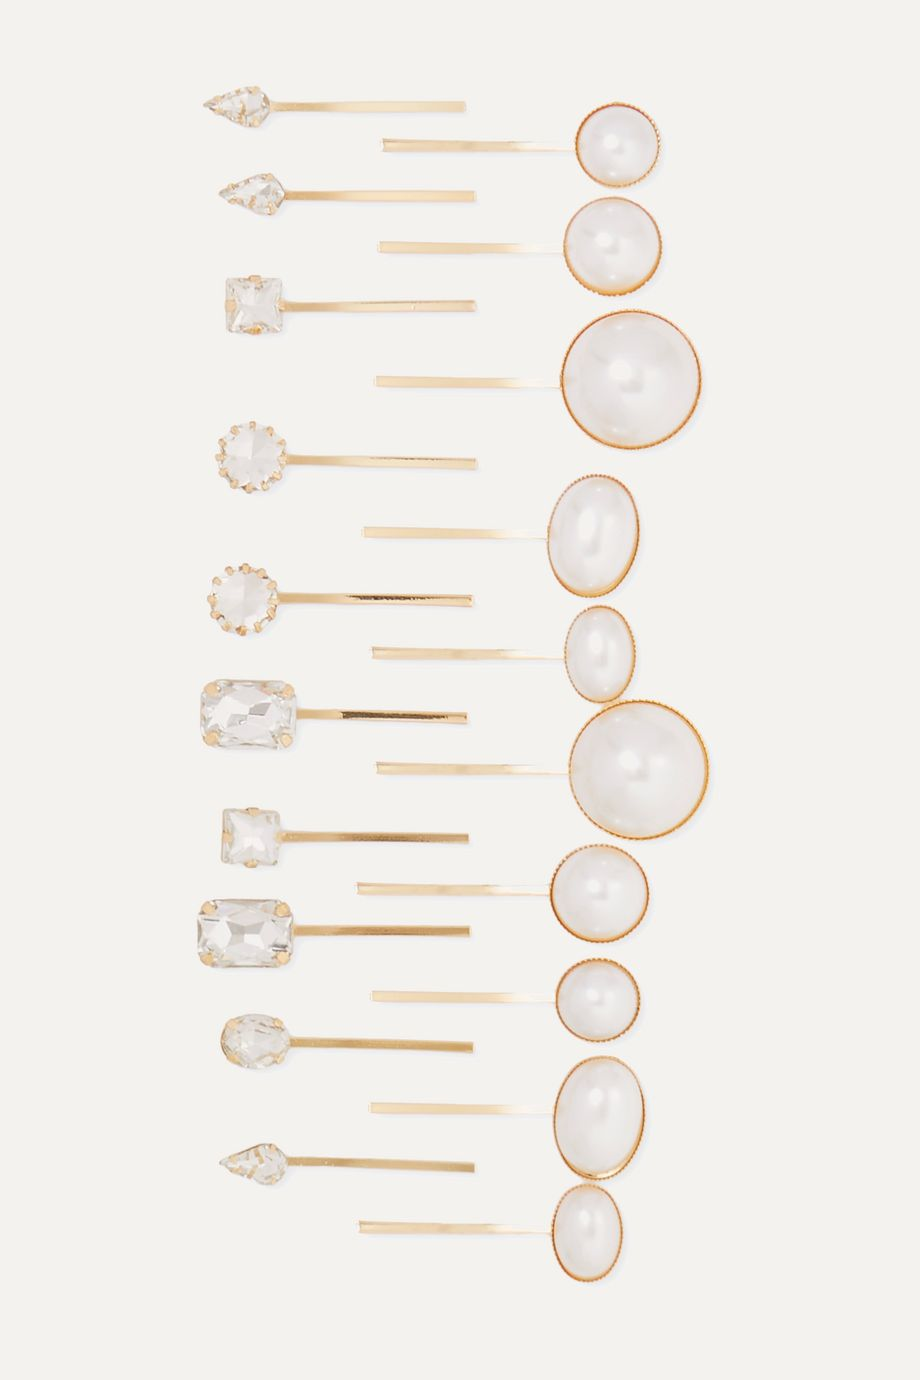 LELET NY + The Haute Pursuit set of 20 gold-tone, crystal and faux pearl hair slides